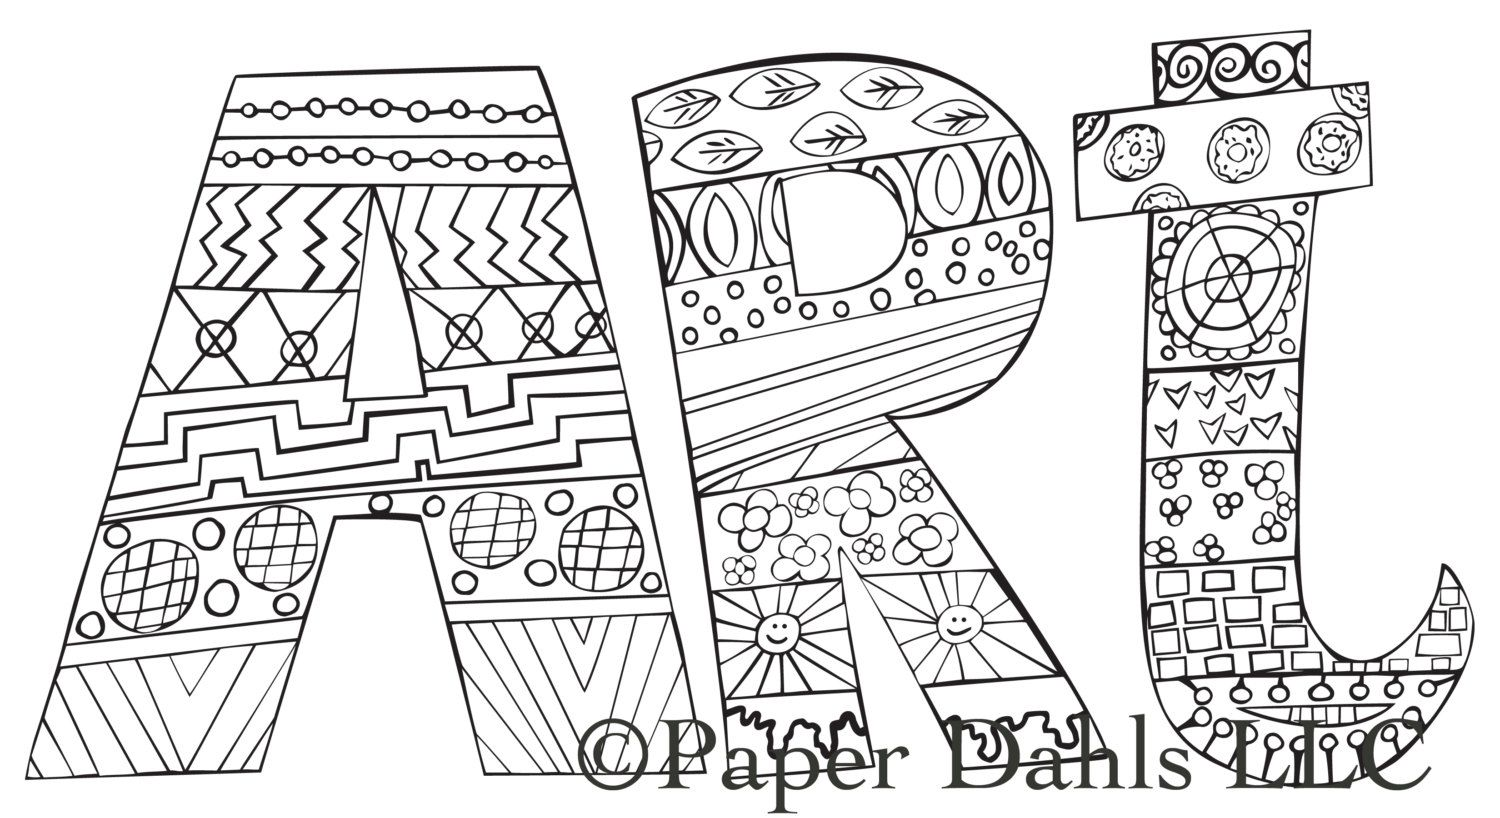 Download Coloring Page for Adults - Art, Handdrawn Coloring Page, Word, Pattern, Relaxation - INSTANT ...